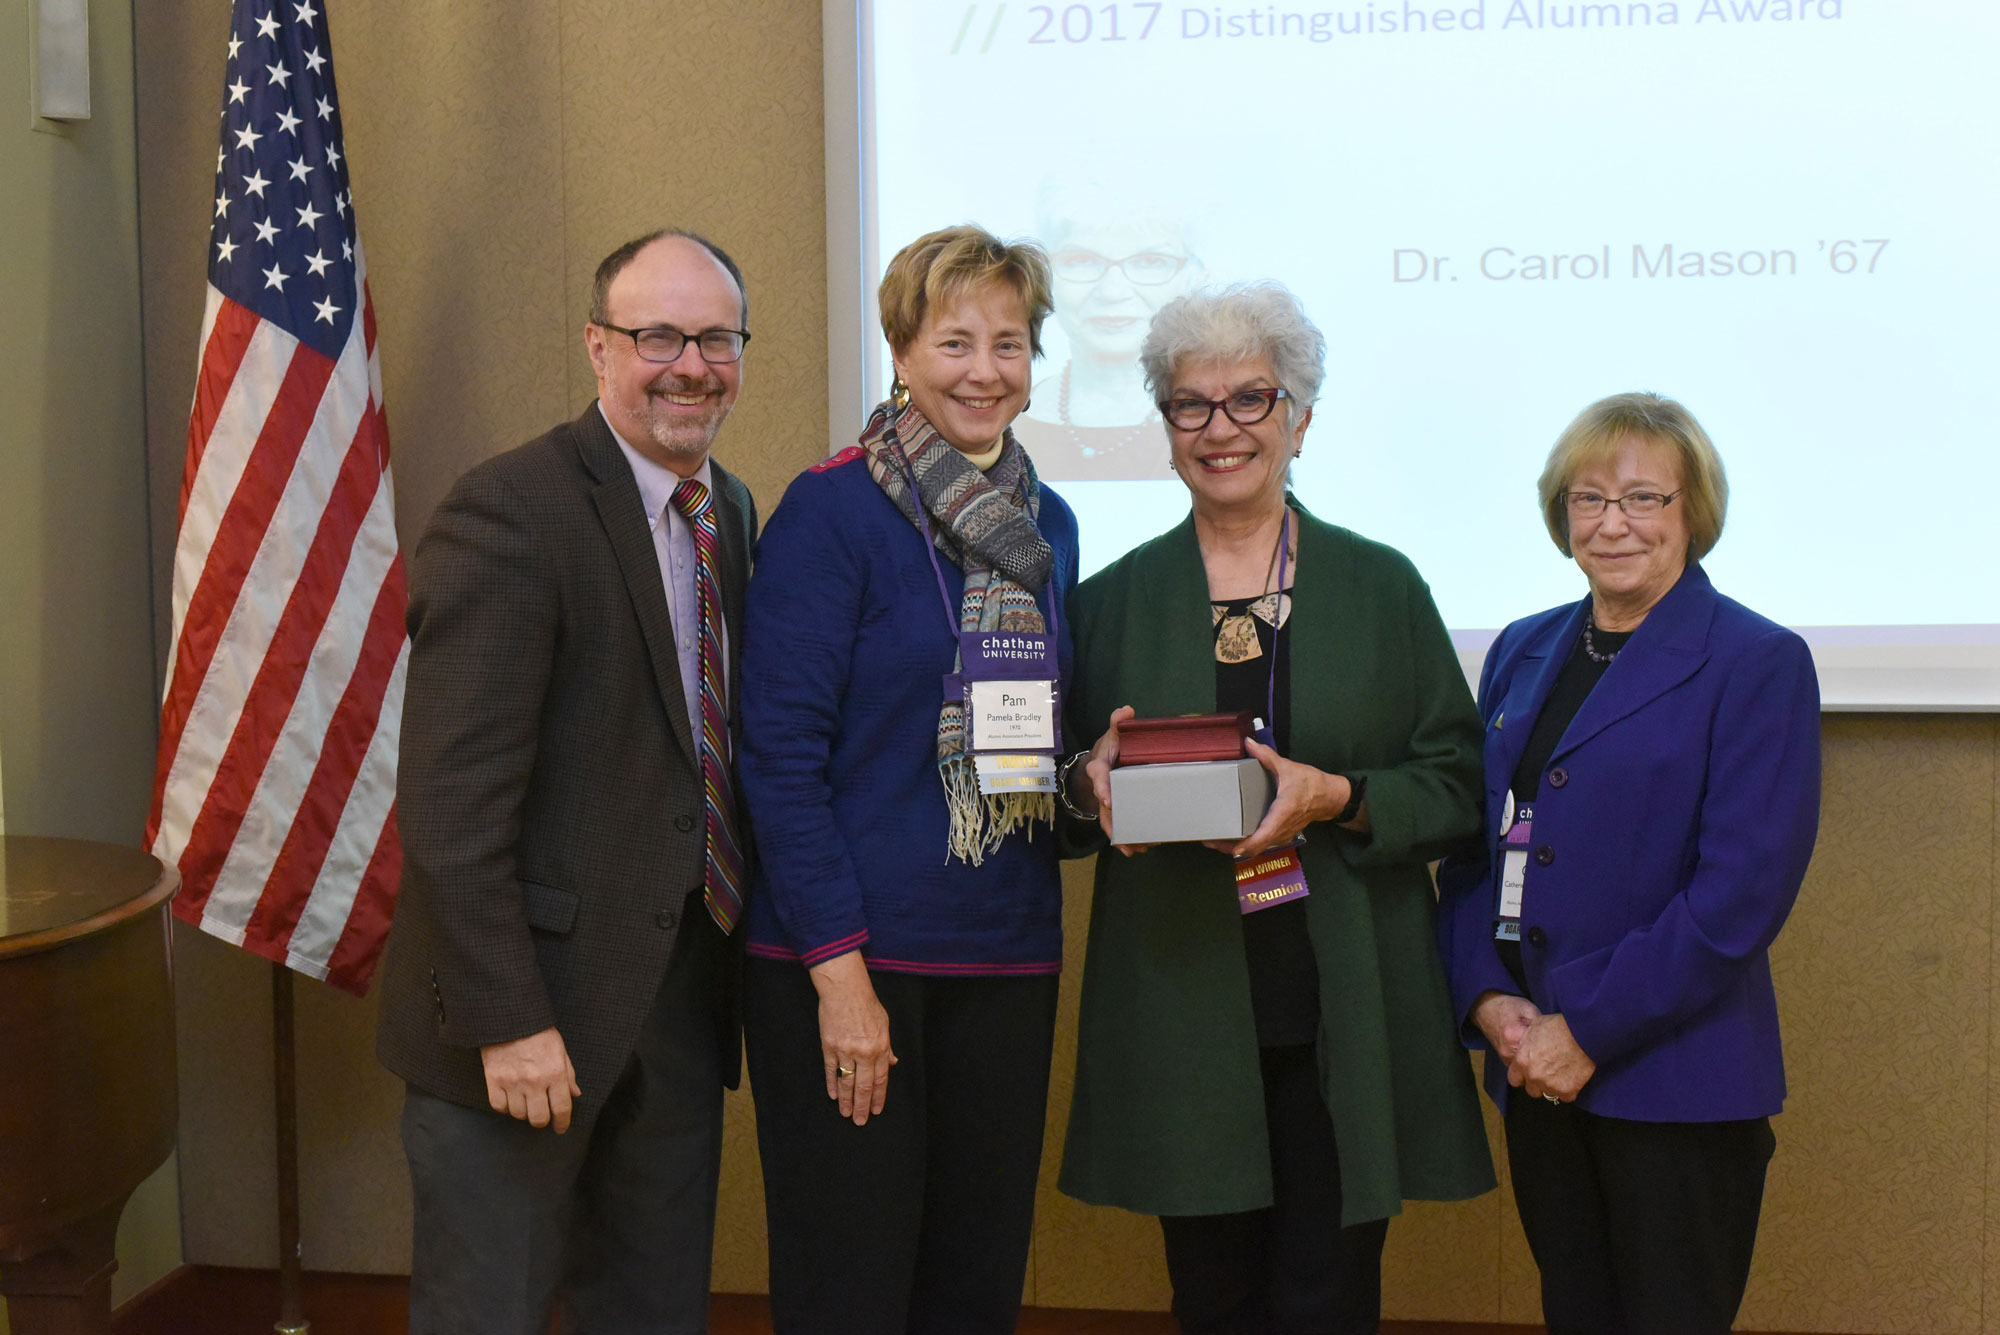 Dr. Mason, second from right, received the Distinguished Alumna Award at Reunion 2017.